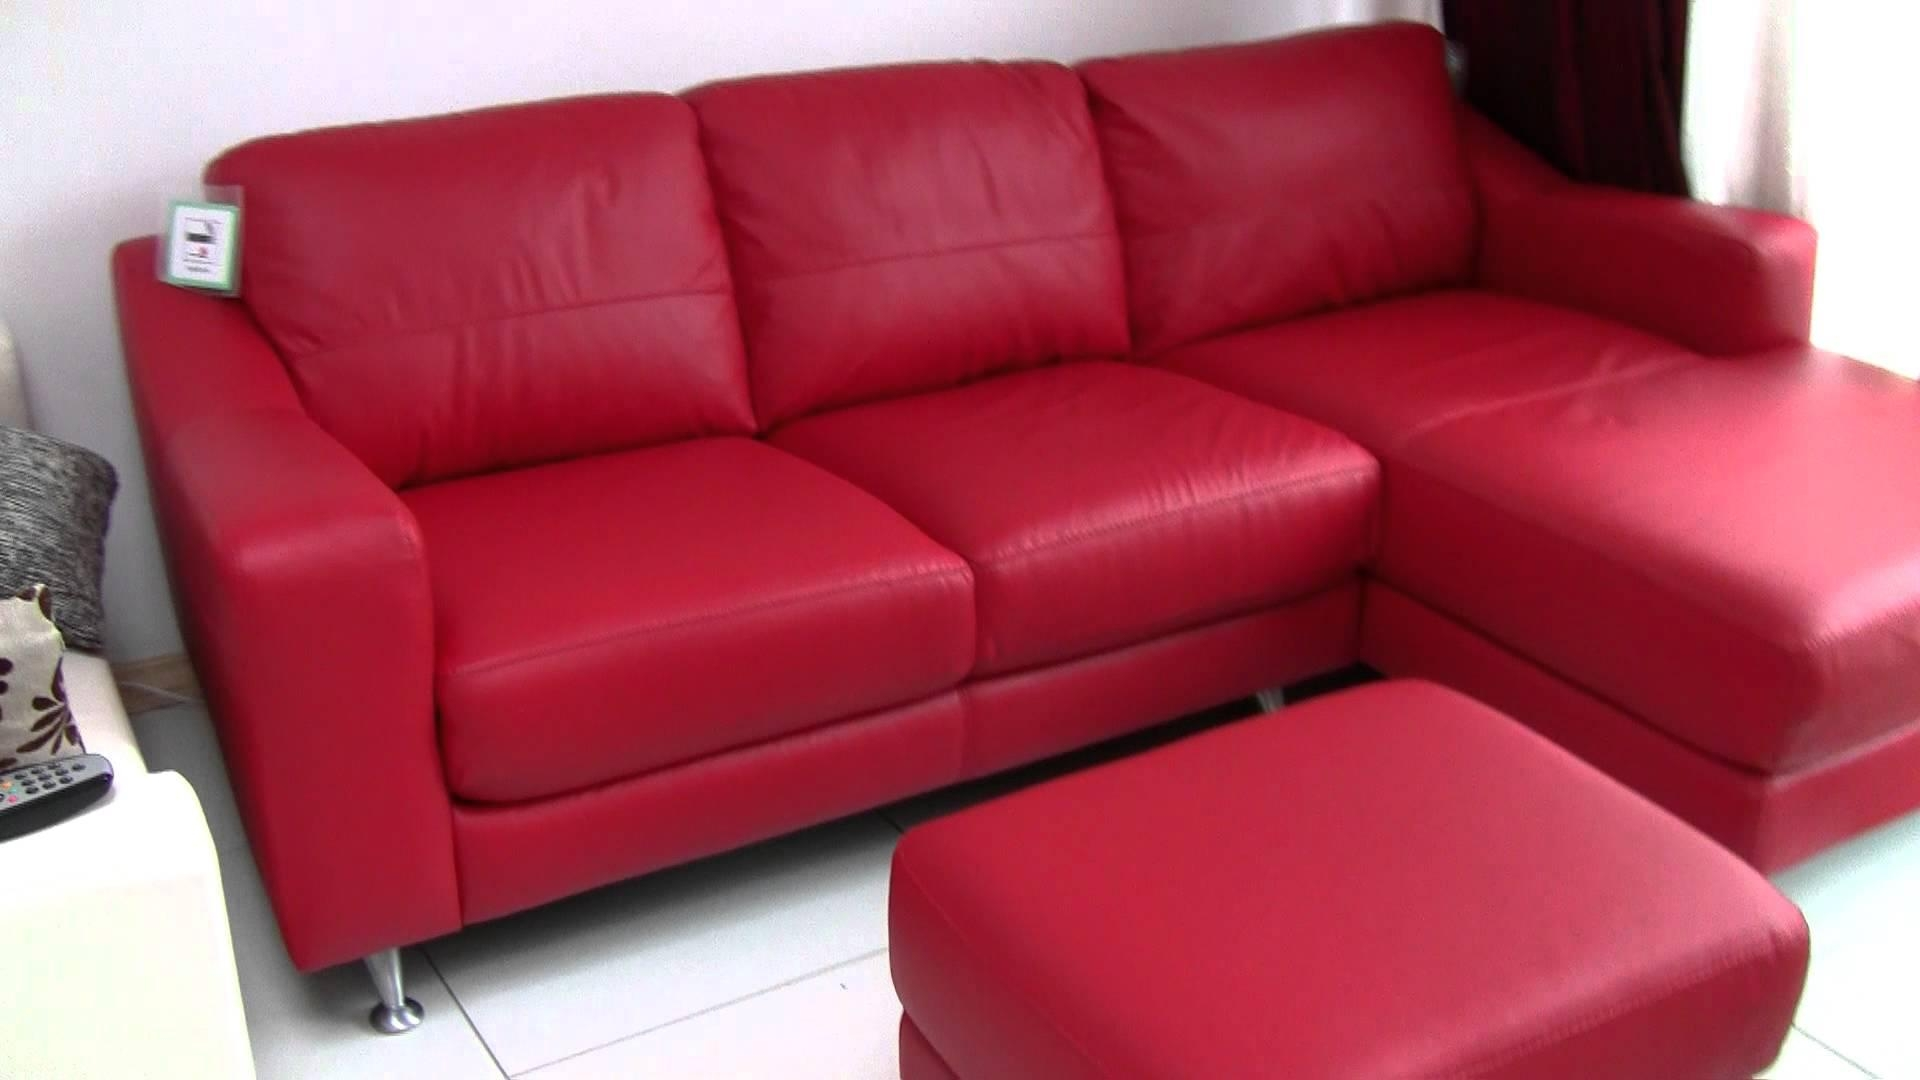 Dfs Leather Corner Sofa For Sale £500 – Youtube With Leather Corner Sofa Bed (Image 5 of 20)